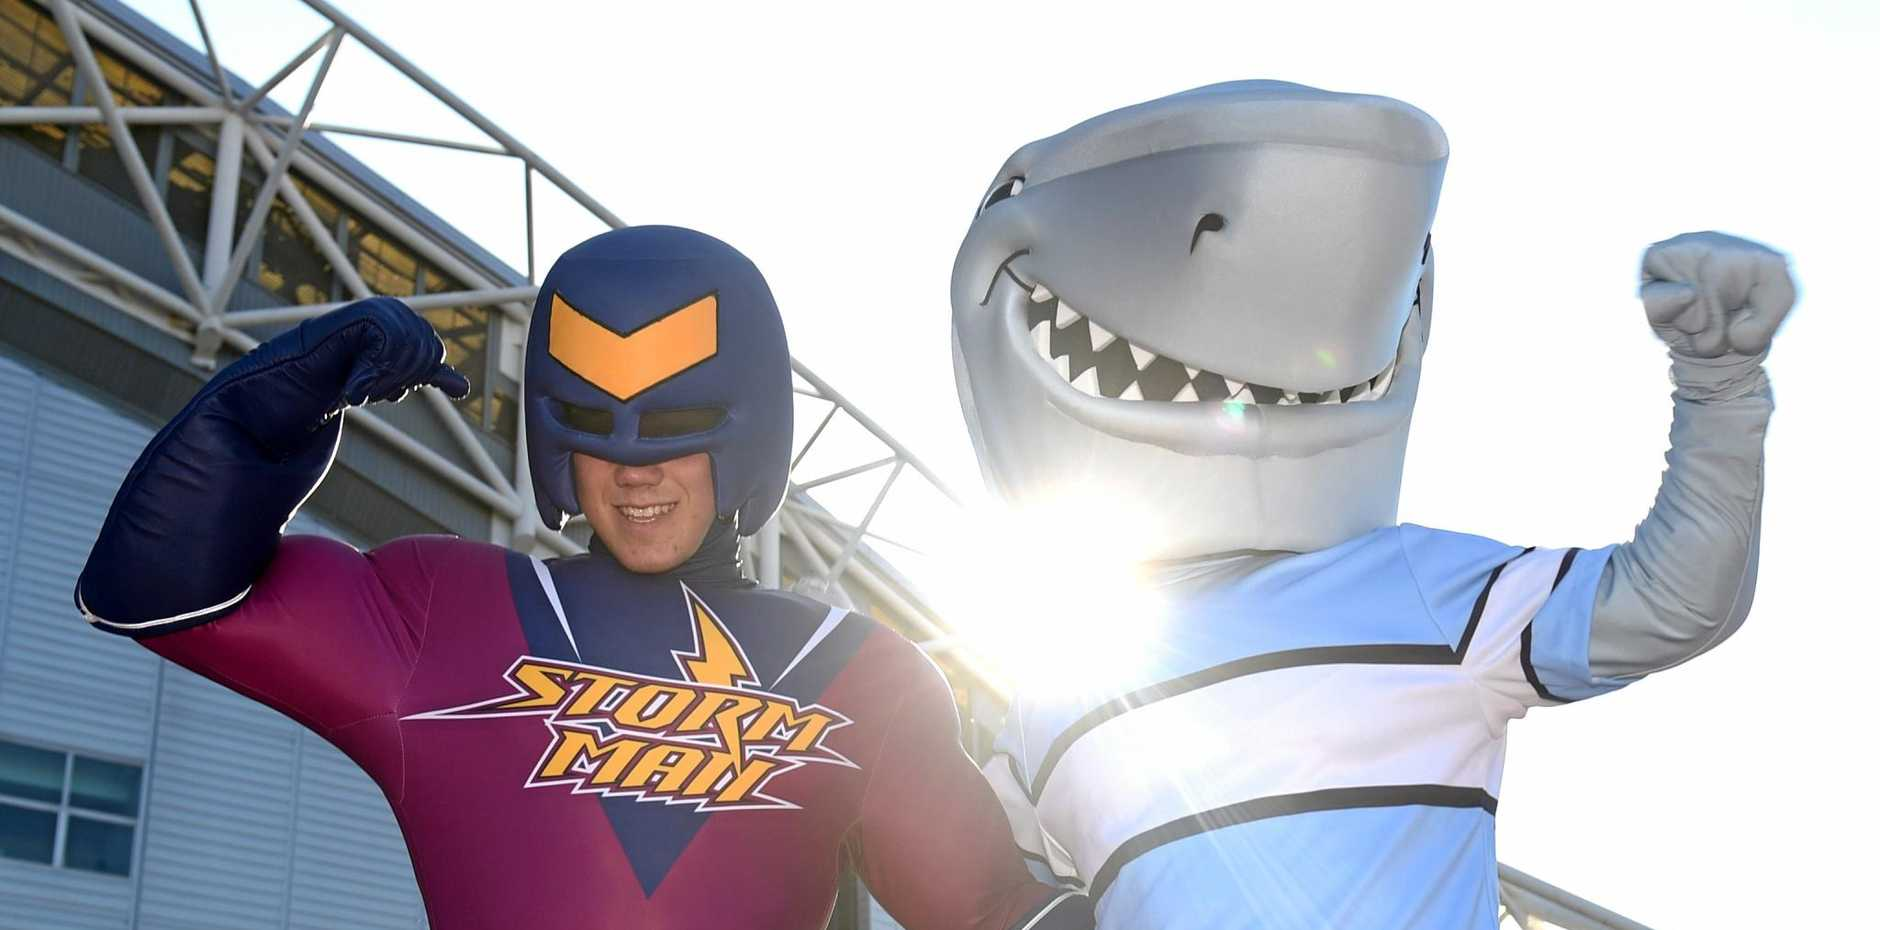 The Melbourne Storm and Cronulla Sharks mascots pose for a photograph before the NRL grand final at ANZ Stadium in Sydney.